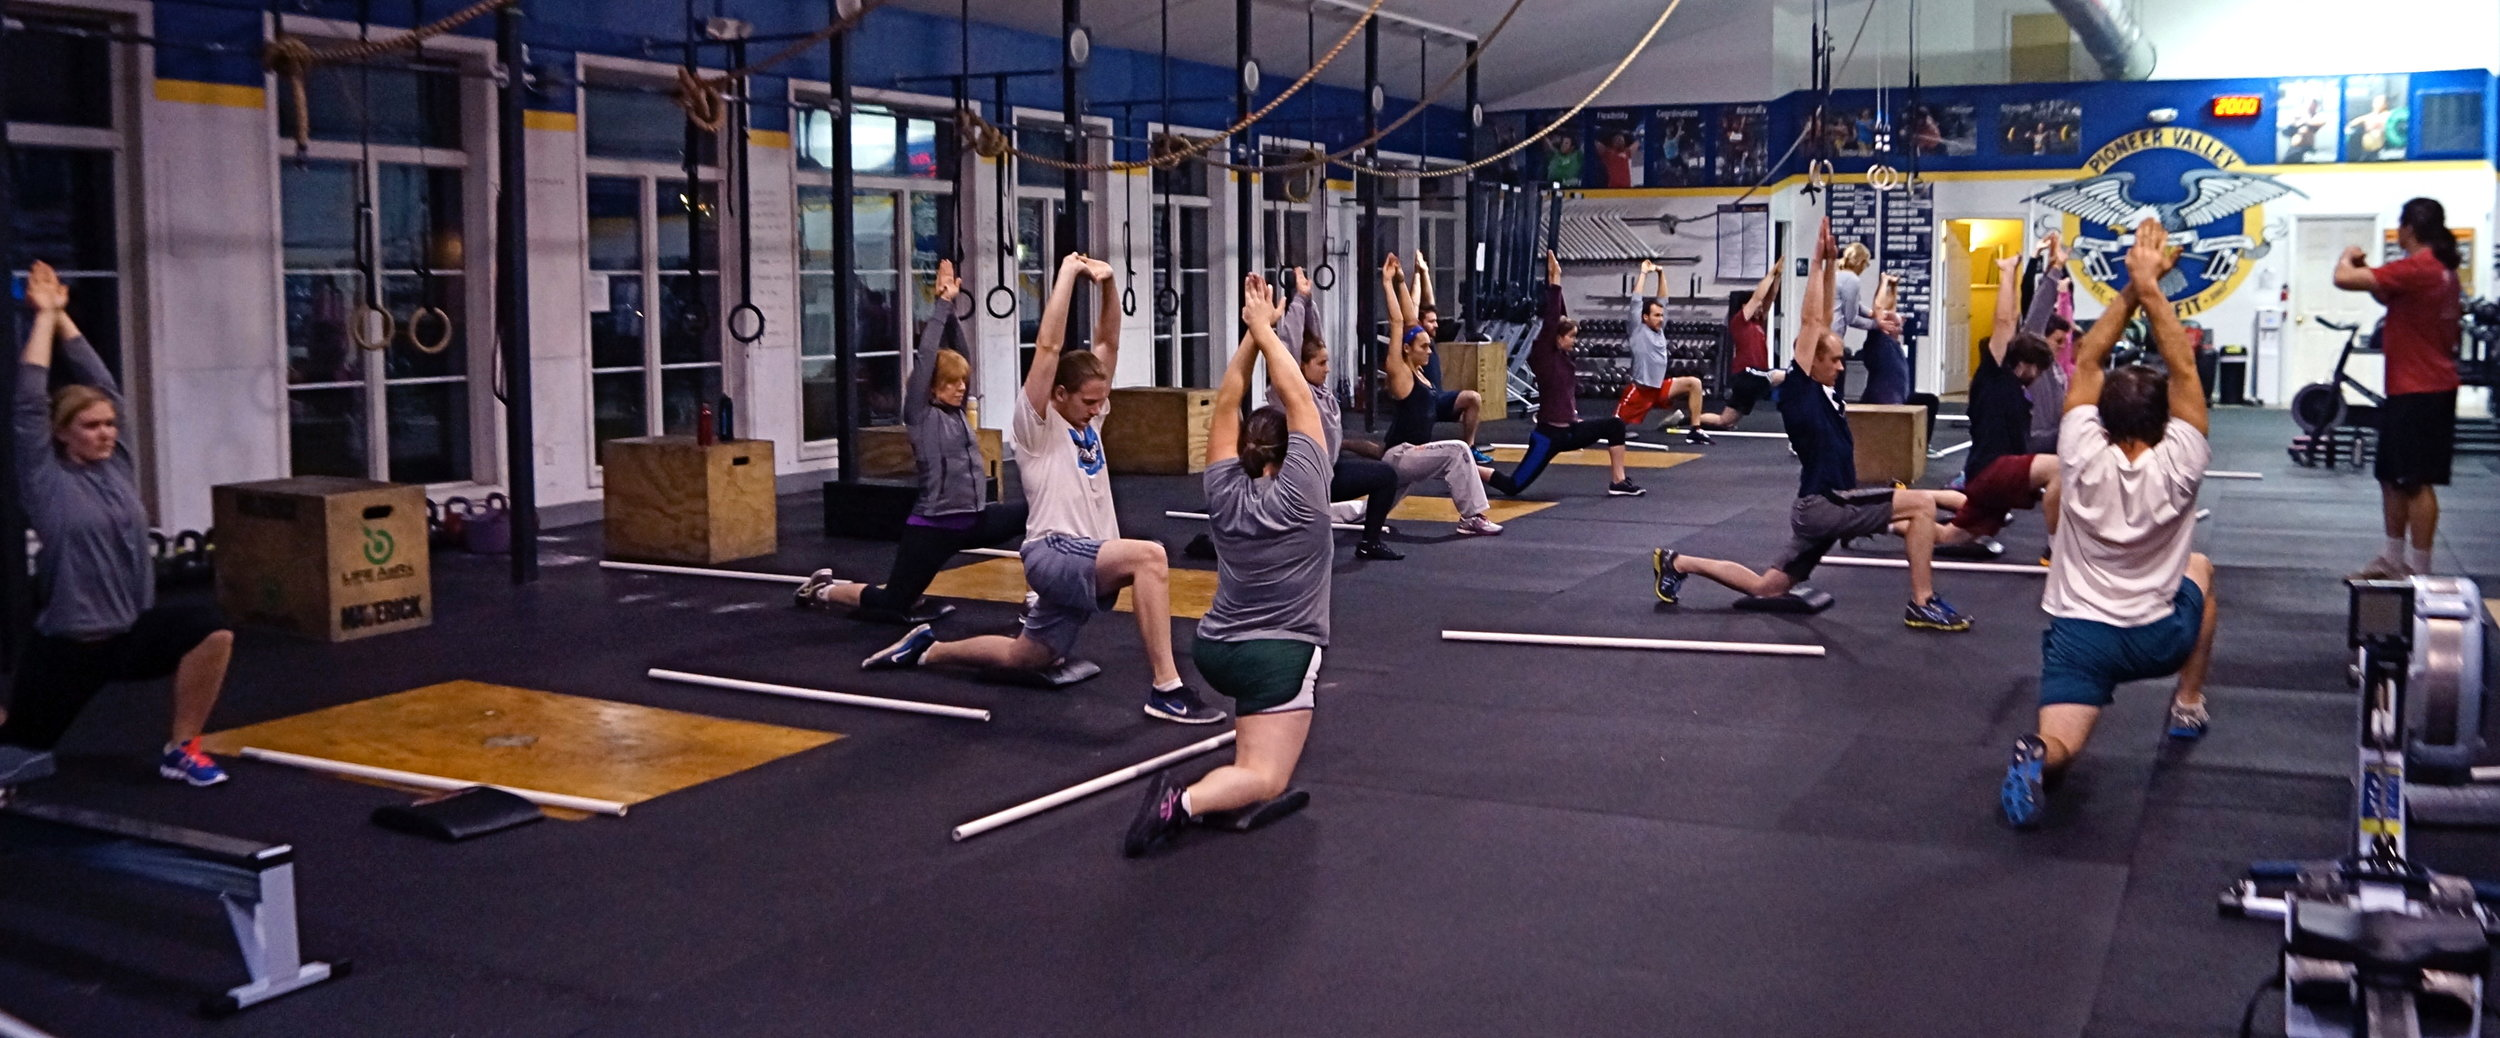 Have a friend who would like to try CrossFit? Tell them about our On-Ramp Program! Or have them email:  info@pioneervalleycrossfit.com